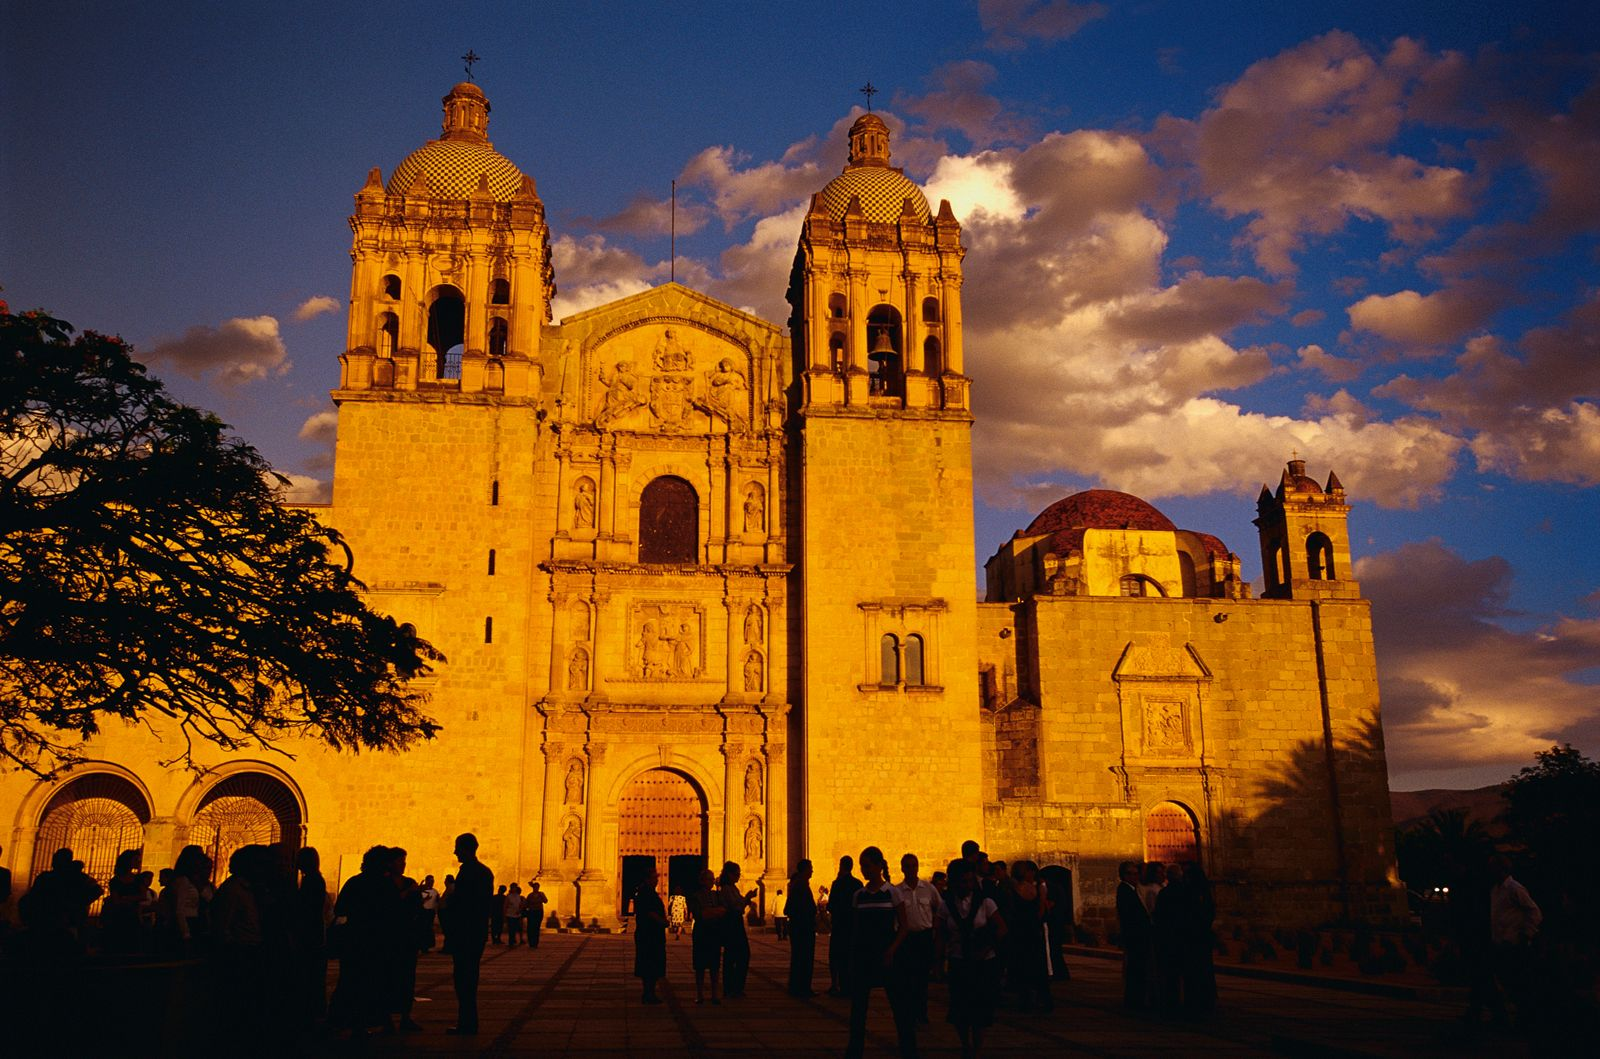 Oaxaca, Mexico. Church of Santo Domingo. Photo: Bob Krist/Corbis.